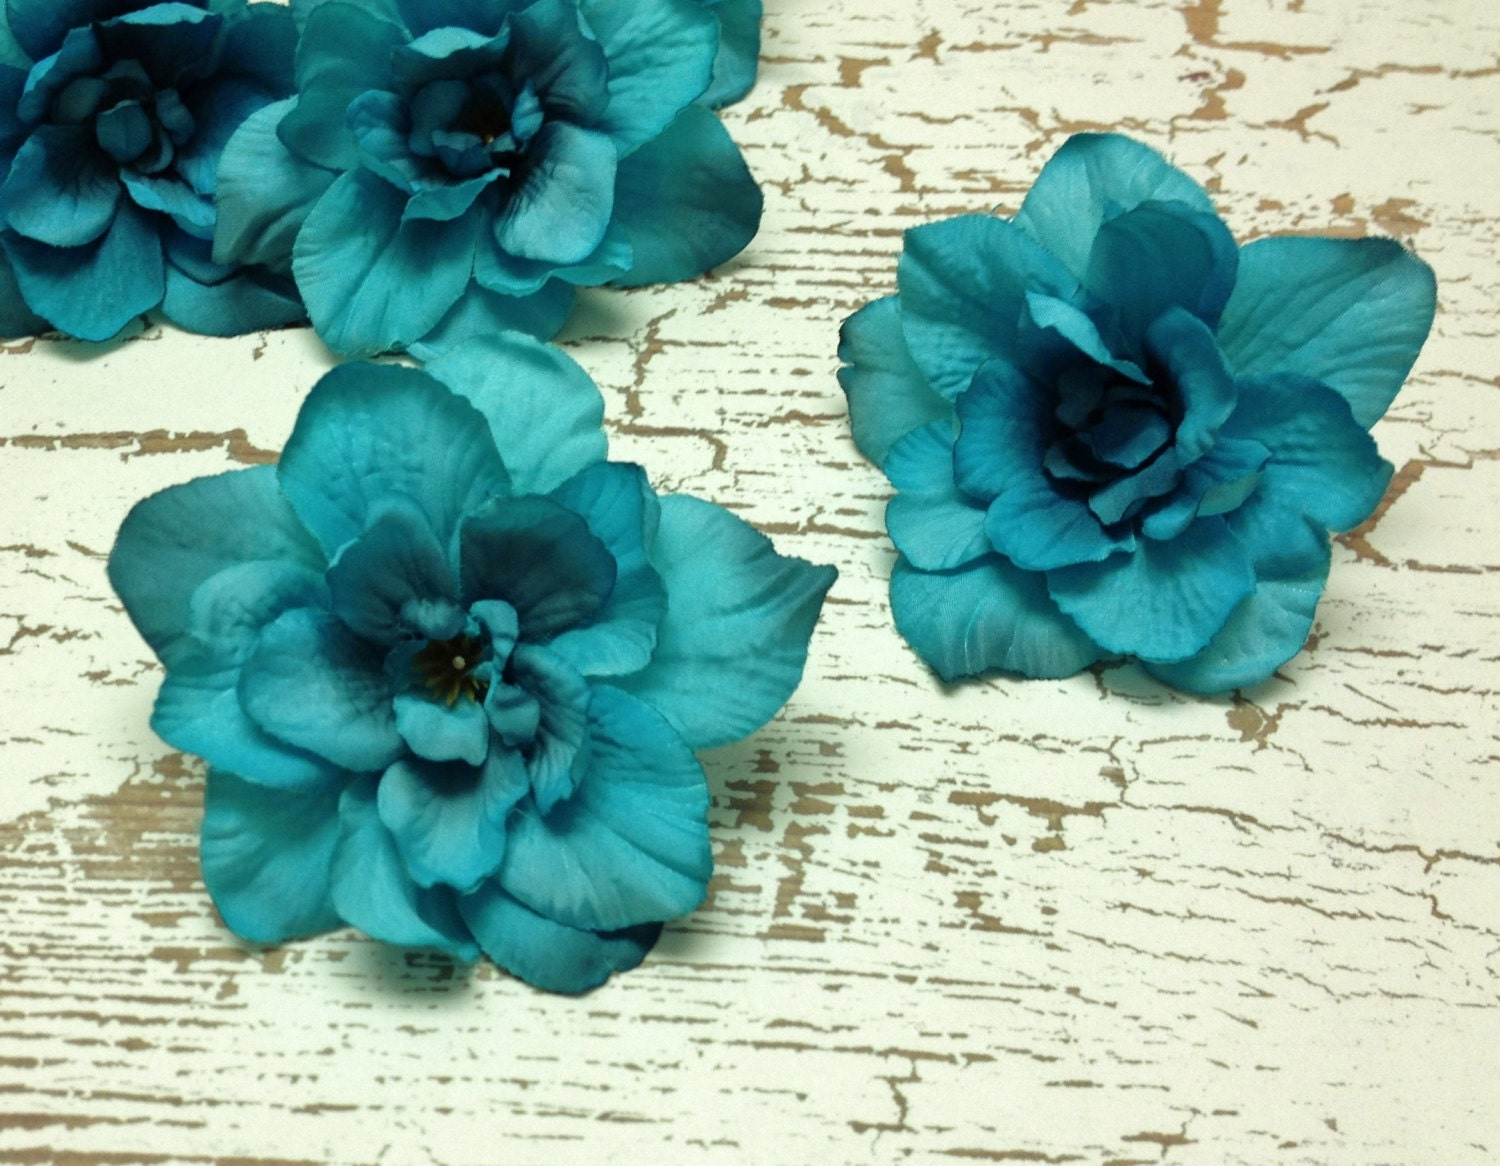 5 turquoise delphinium blossoms aqua blue green artificial 5 turquoise delphinium blossoms aqua blue green artificial flowers silk flowers millinery flower crown from blissfulsilks on etsy studio mightylinksfo